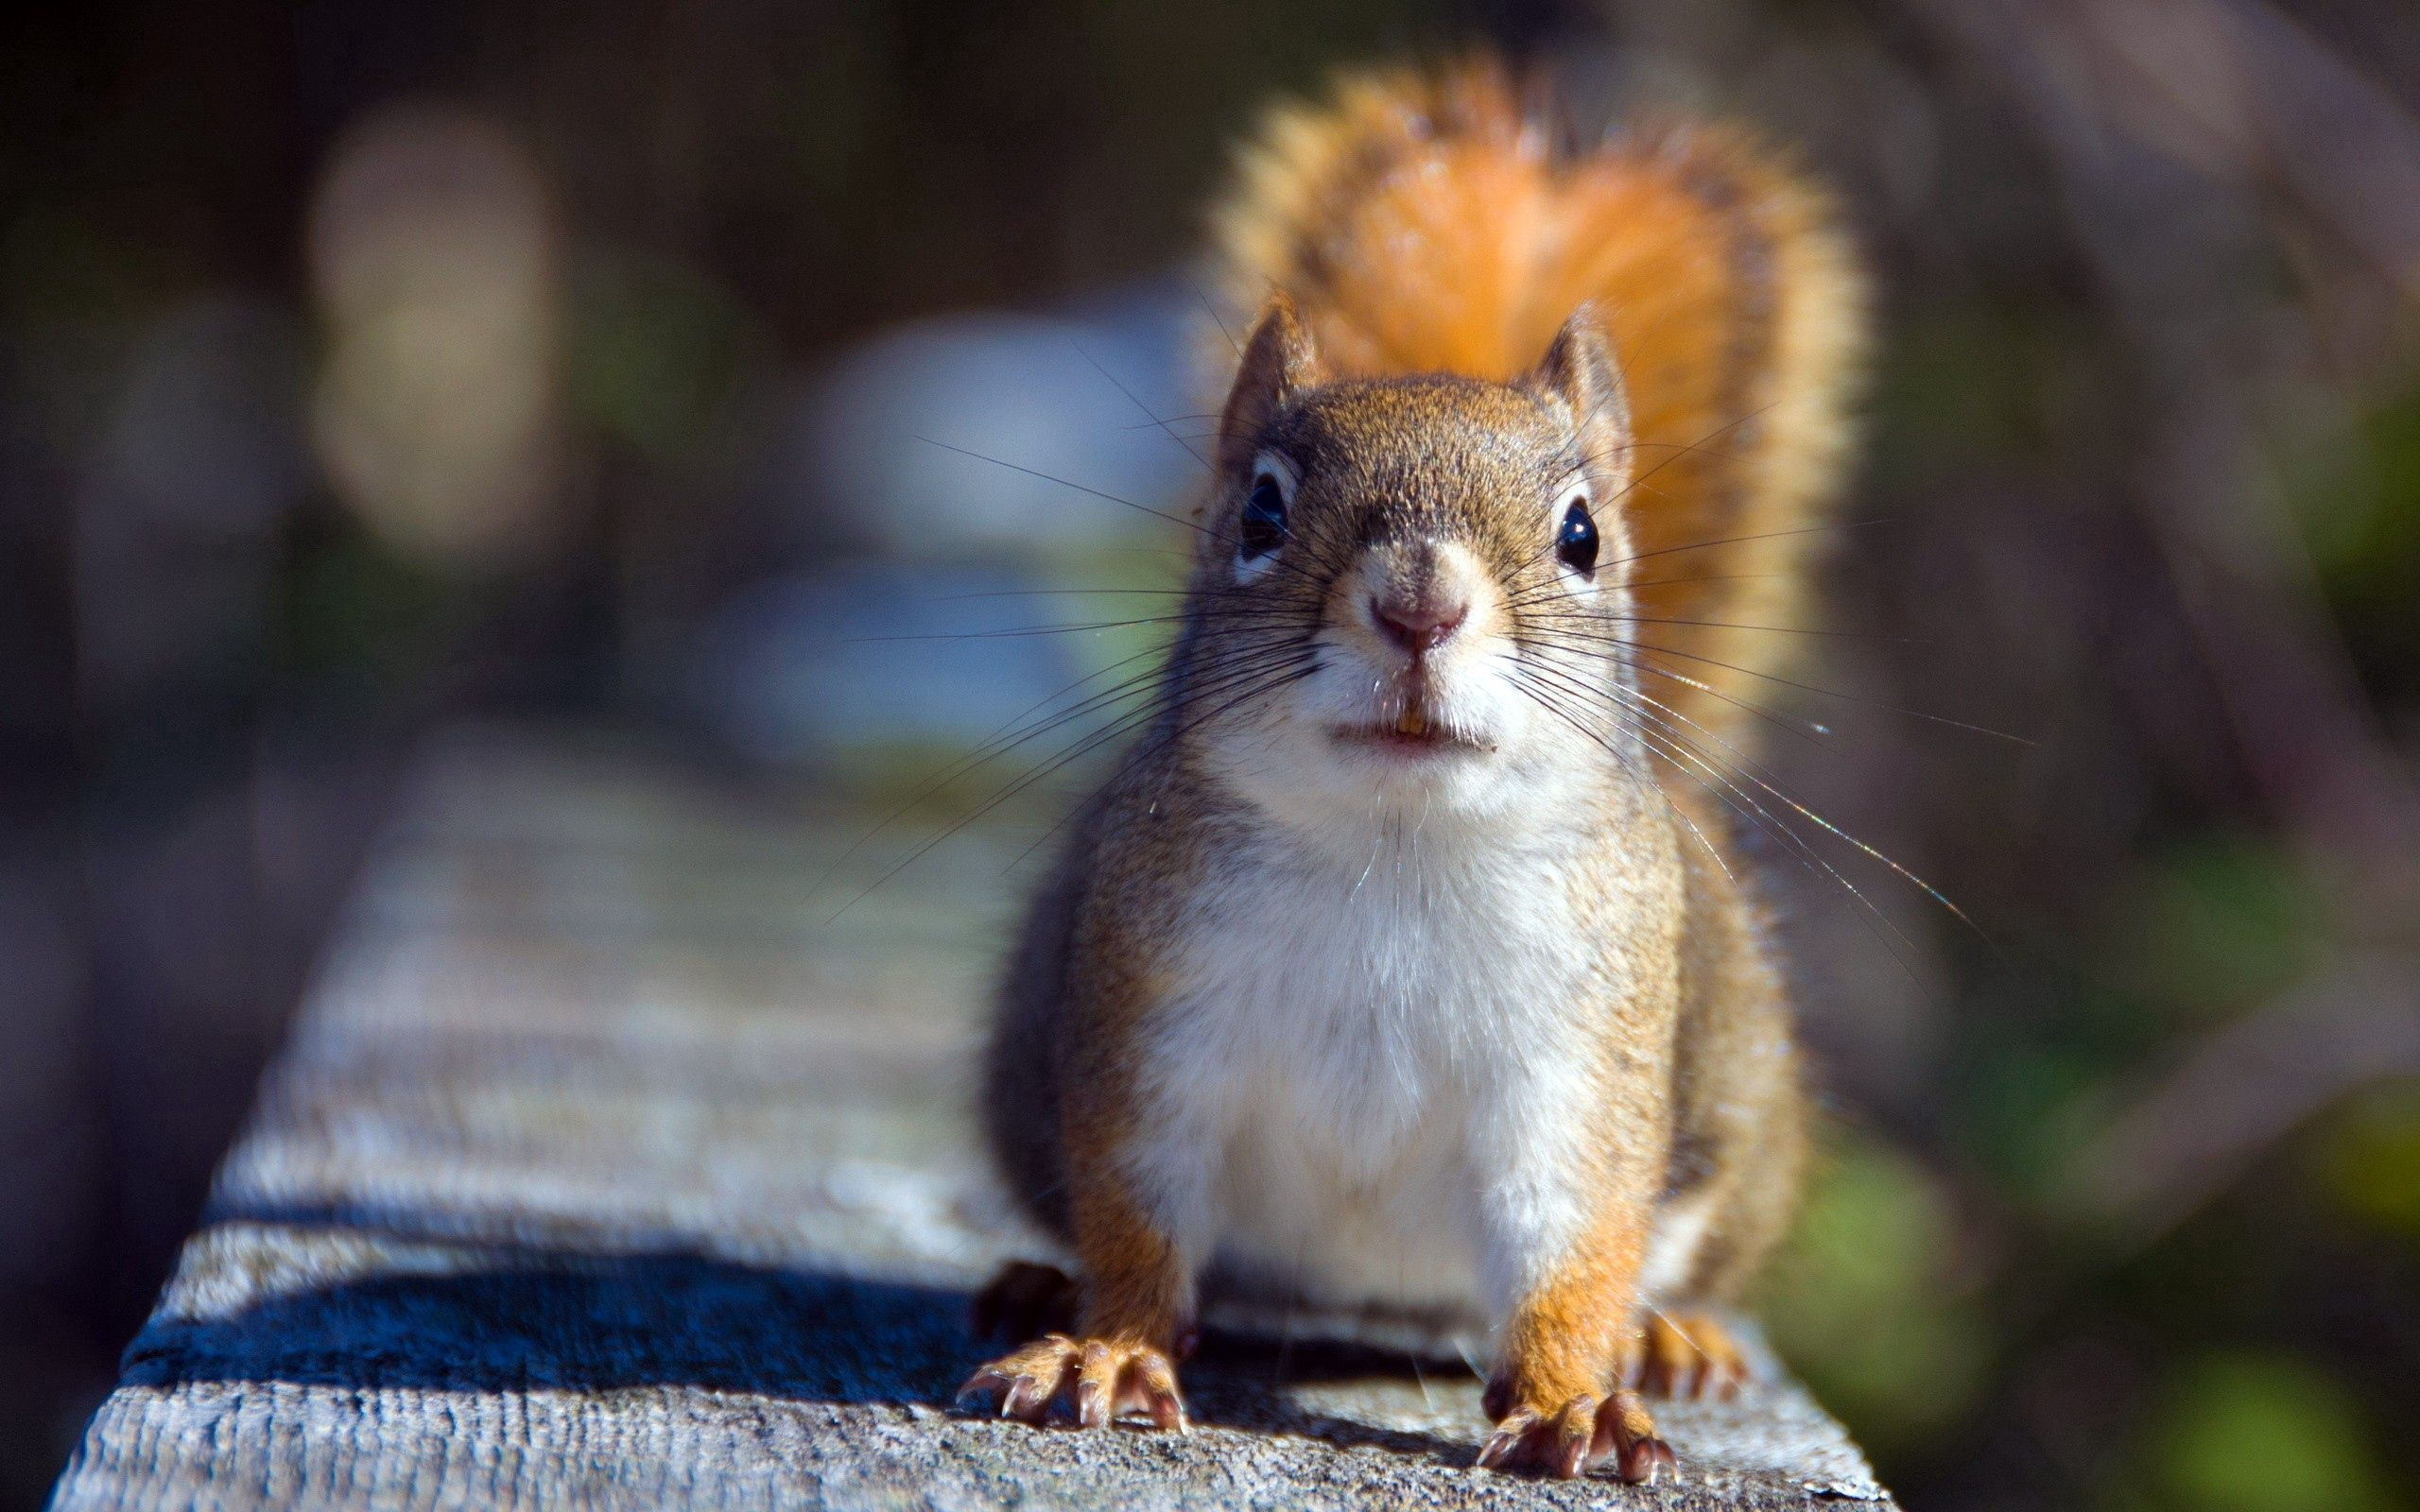 84067 download wallpaper Animals, Squirrel, Animal, Shadow, Sight, Opinion screensavers and pictures for free